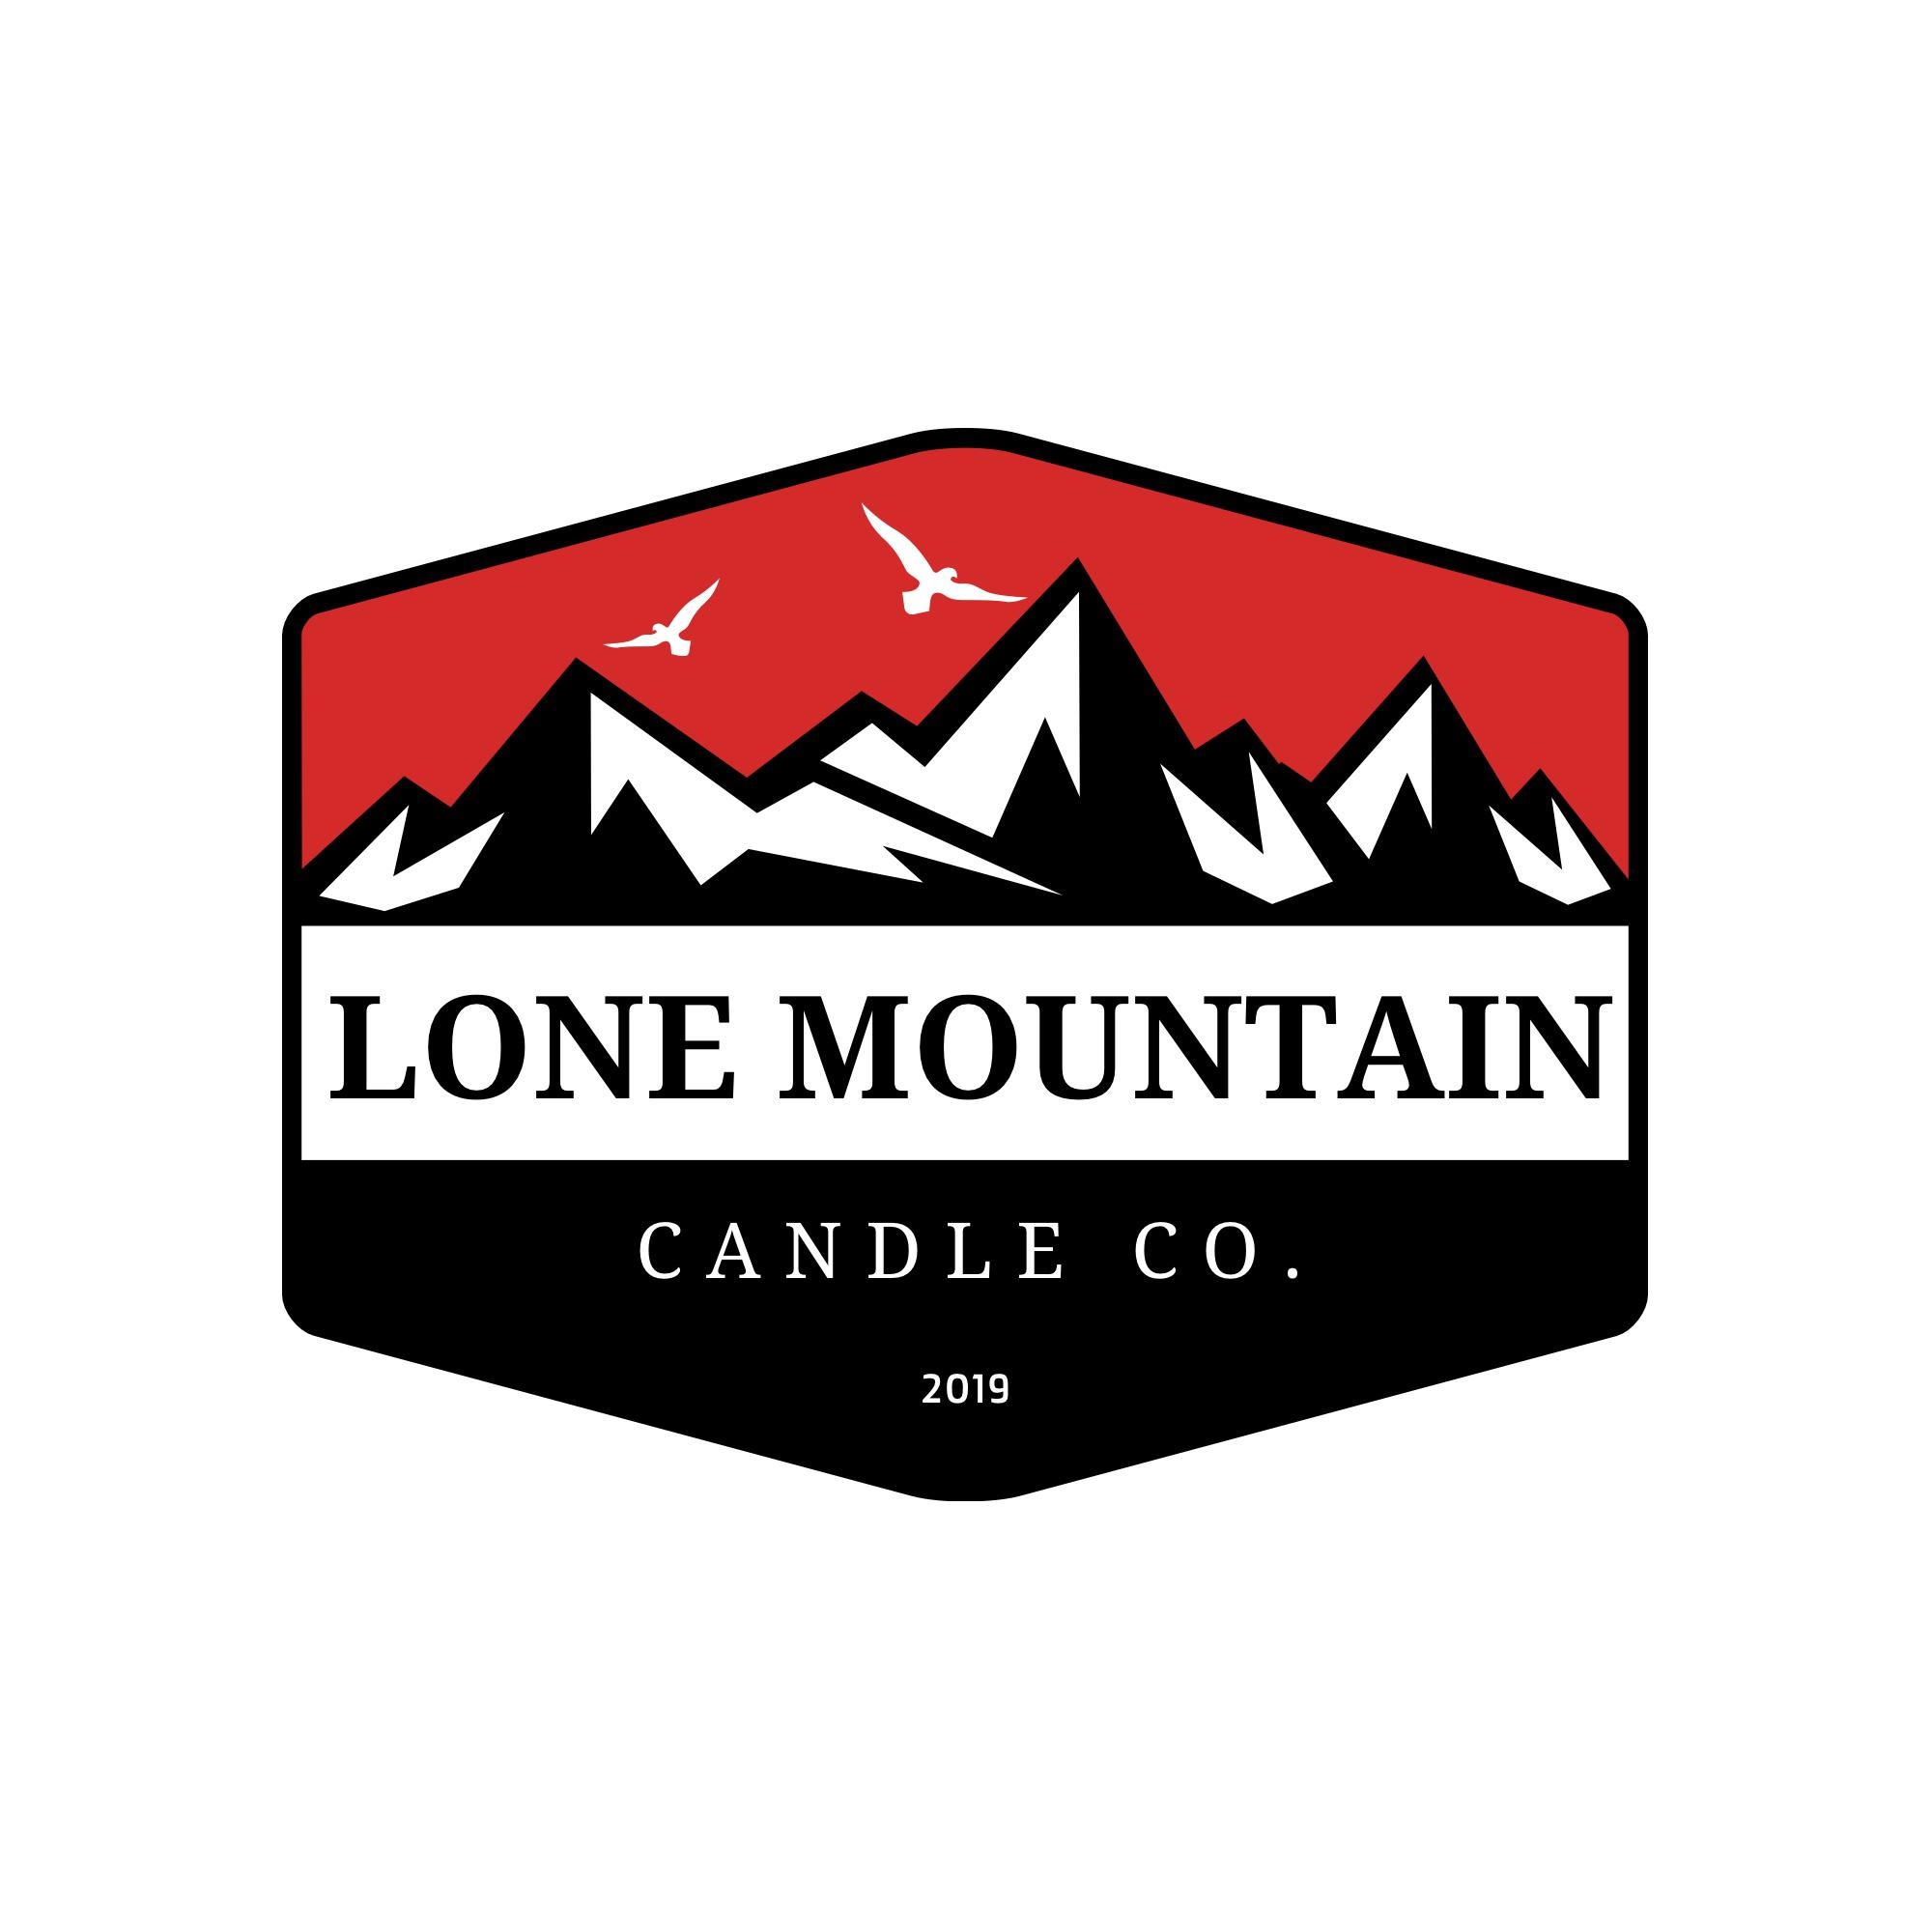 Lone Mountain Candle Company